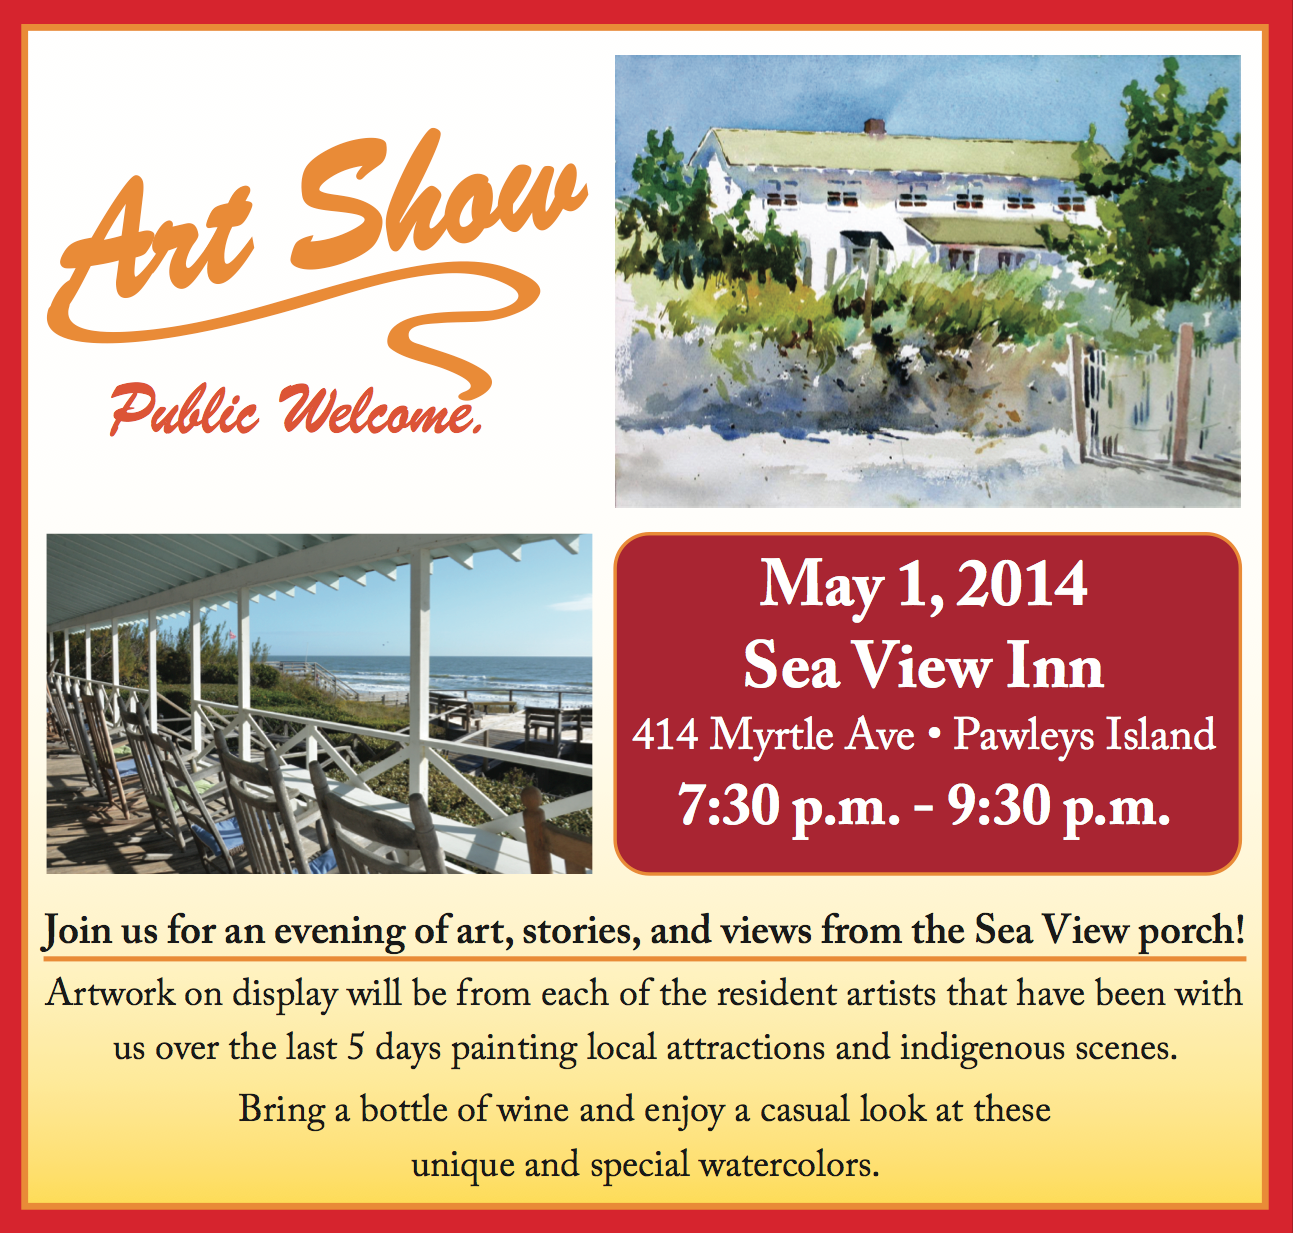 Sea View Inn Art Show May 1